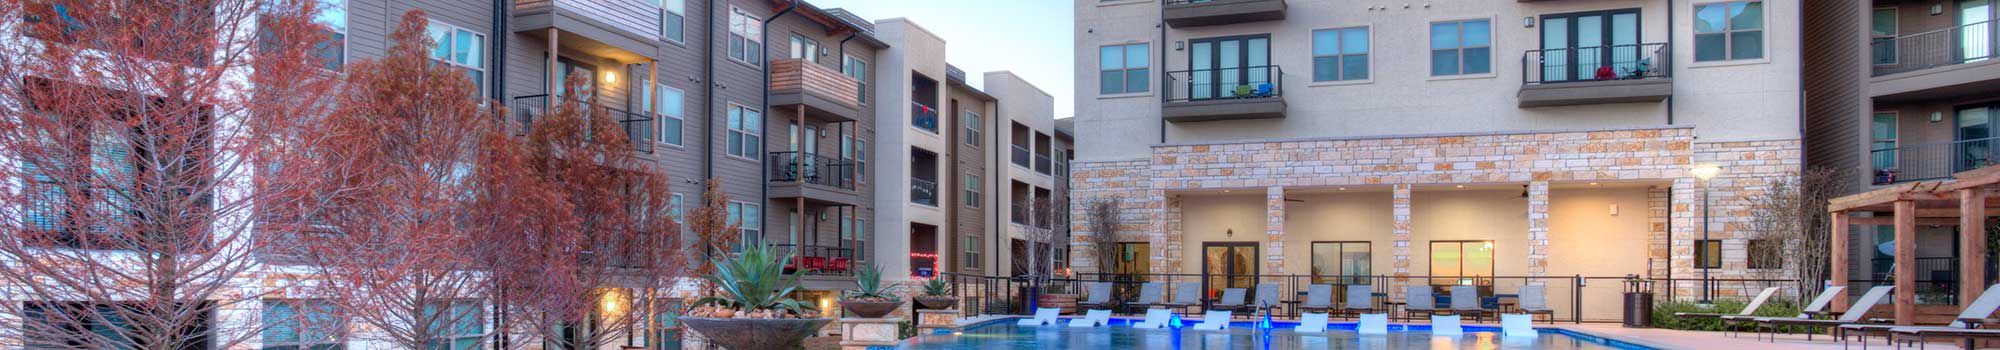 48 48 Bedroom Apartments For Rent In San Antonio TX Awesome 1 Bedroom Apartments San Antonio Tx